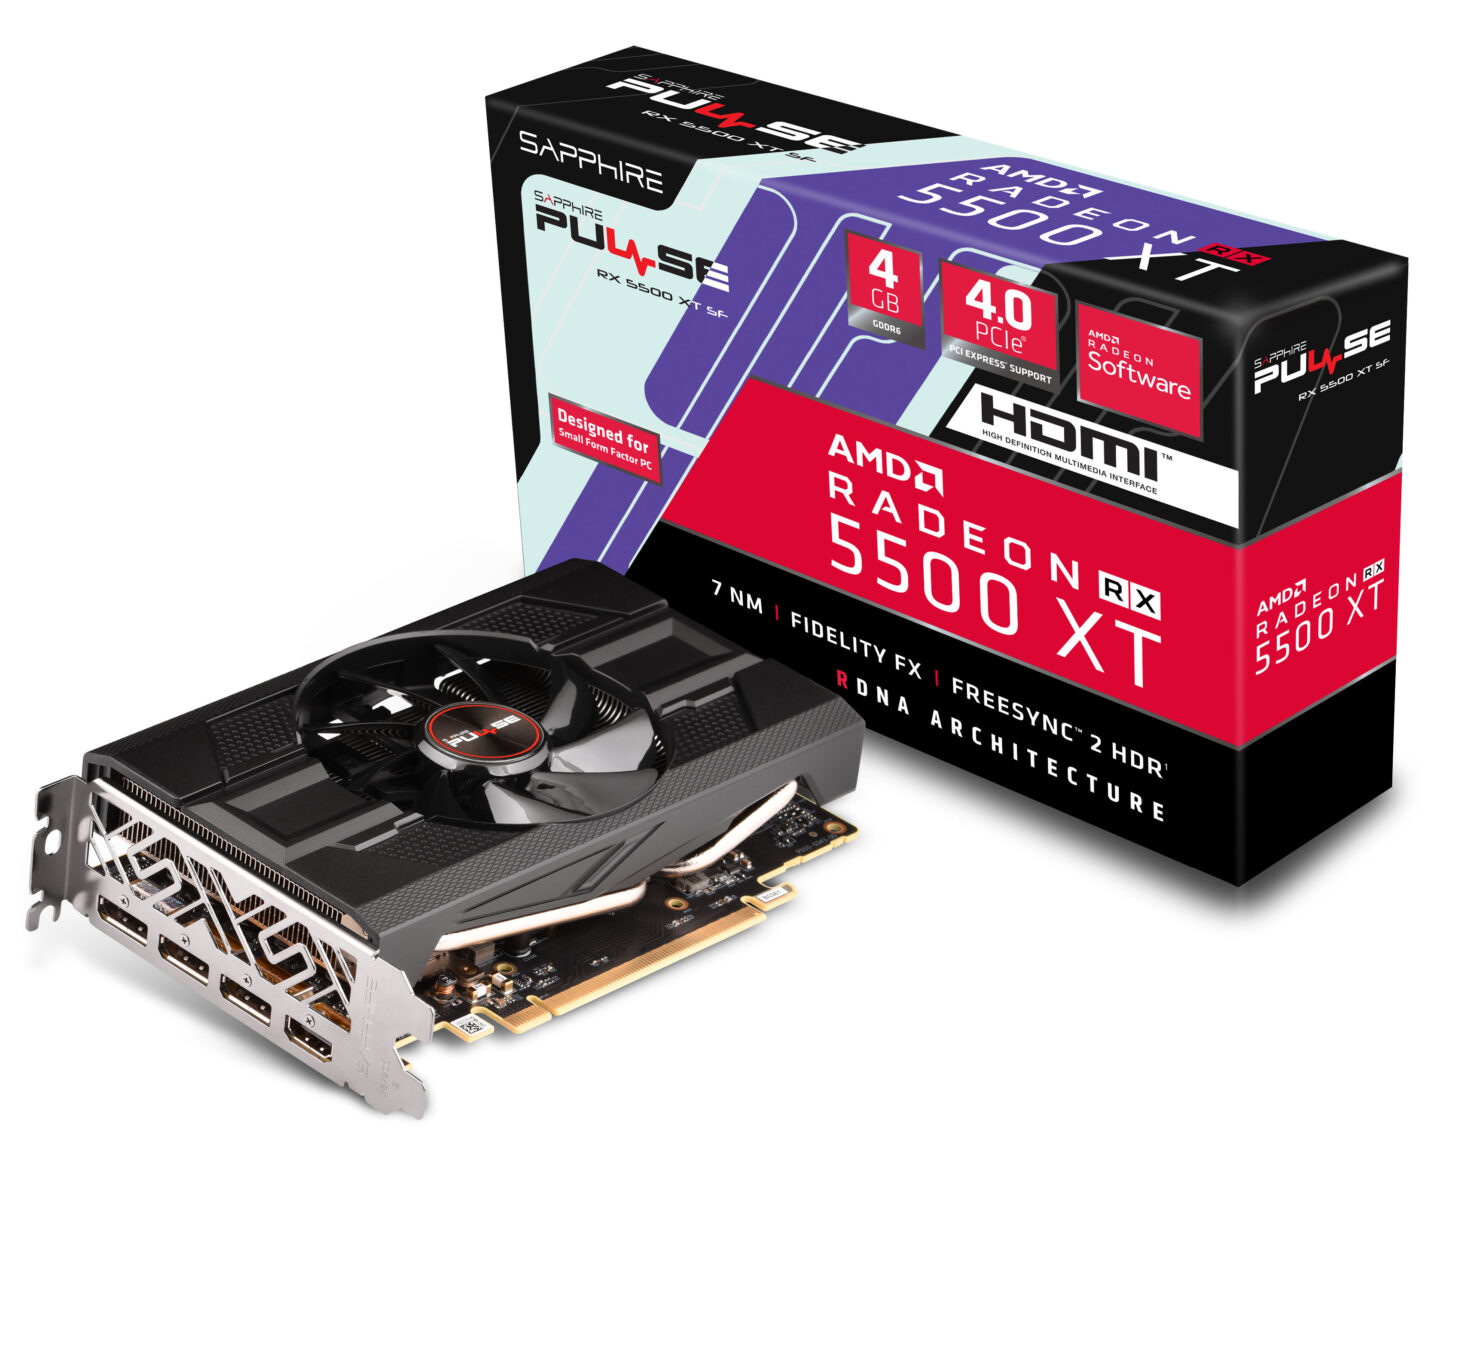 sapphire-slides-out-a-small-form-factor-pulse-rx-5500hellip